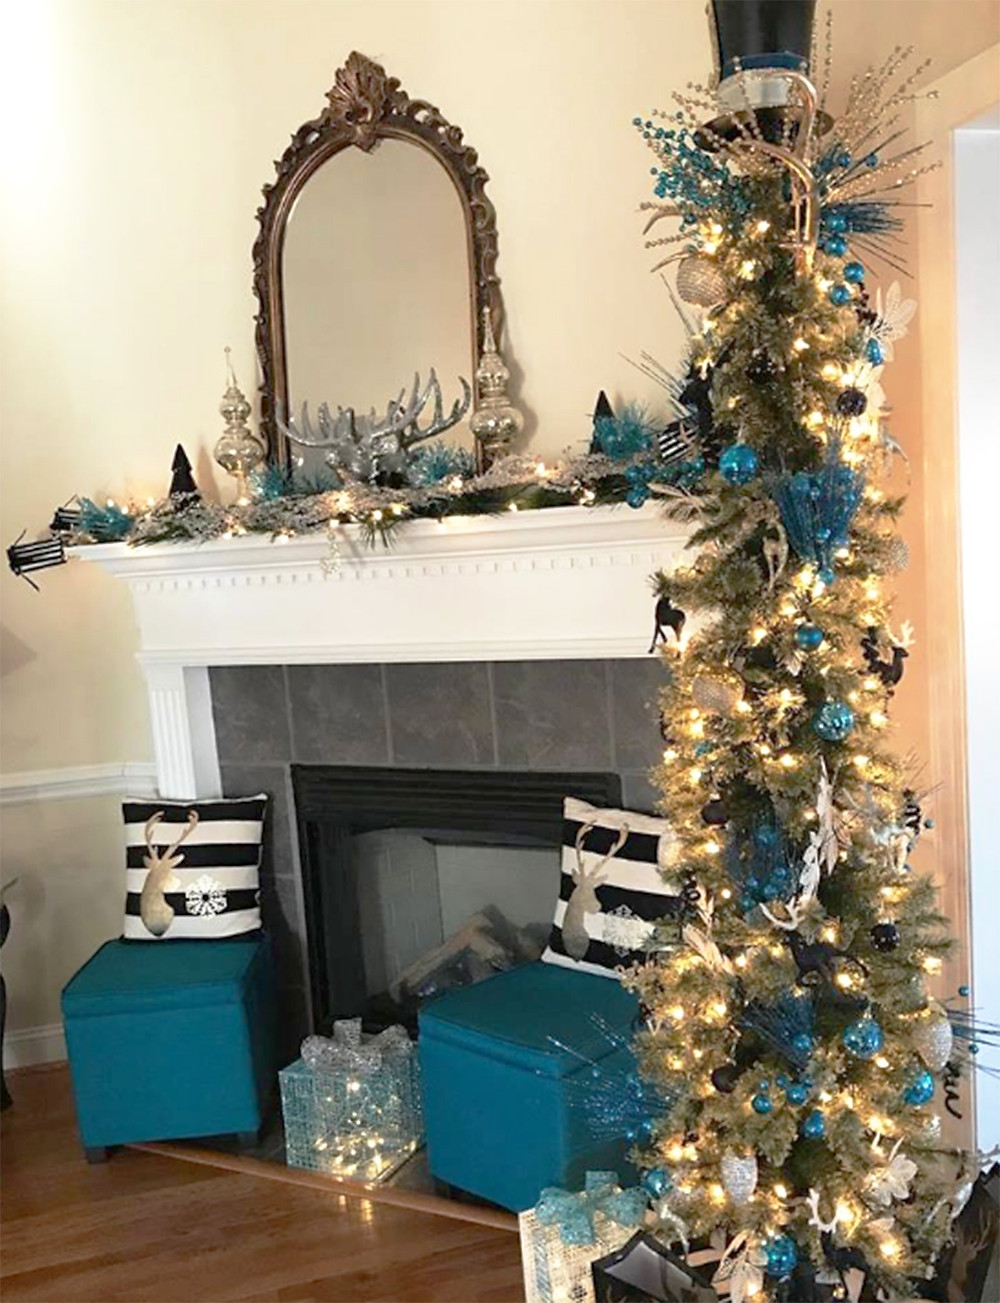 Upscale Holiday Decor with theme of Reindeer, gold, silver and teal accents,